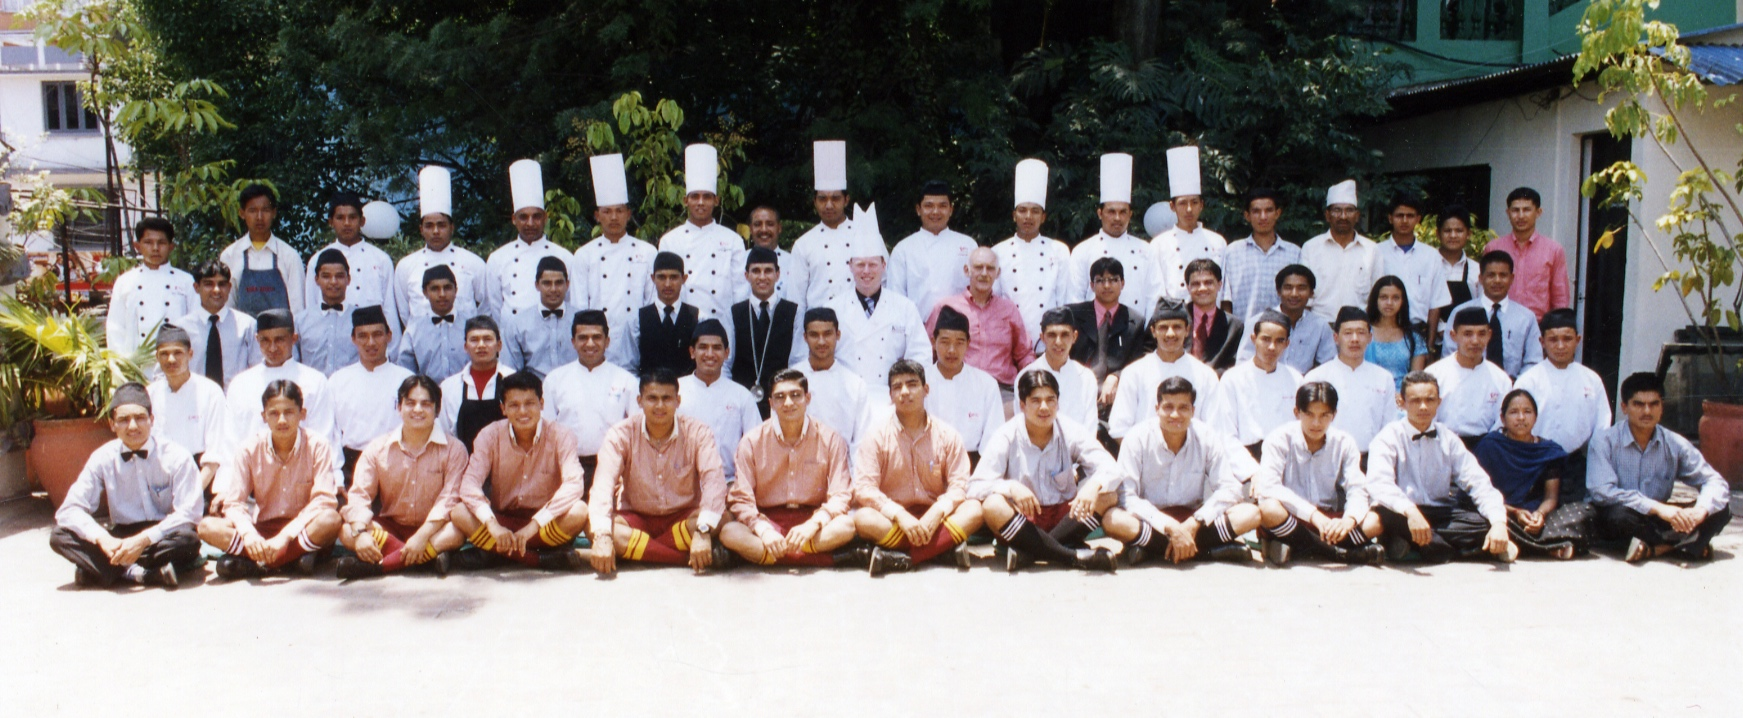 The chefs, waiters, dishwashers, management, maintenance, security and administration teams who made it all possible!